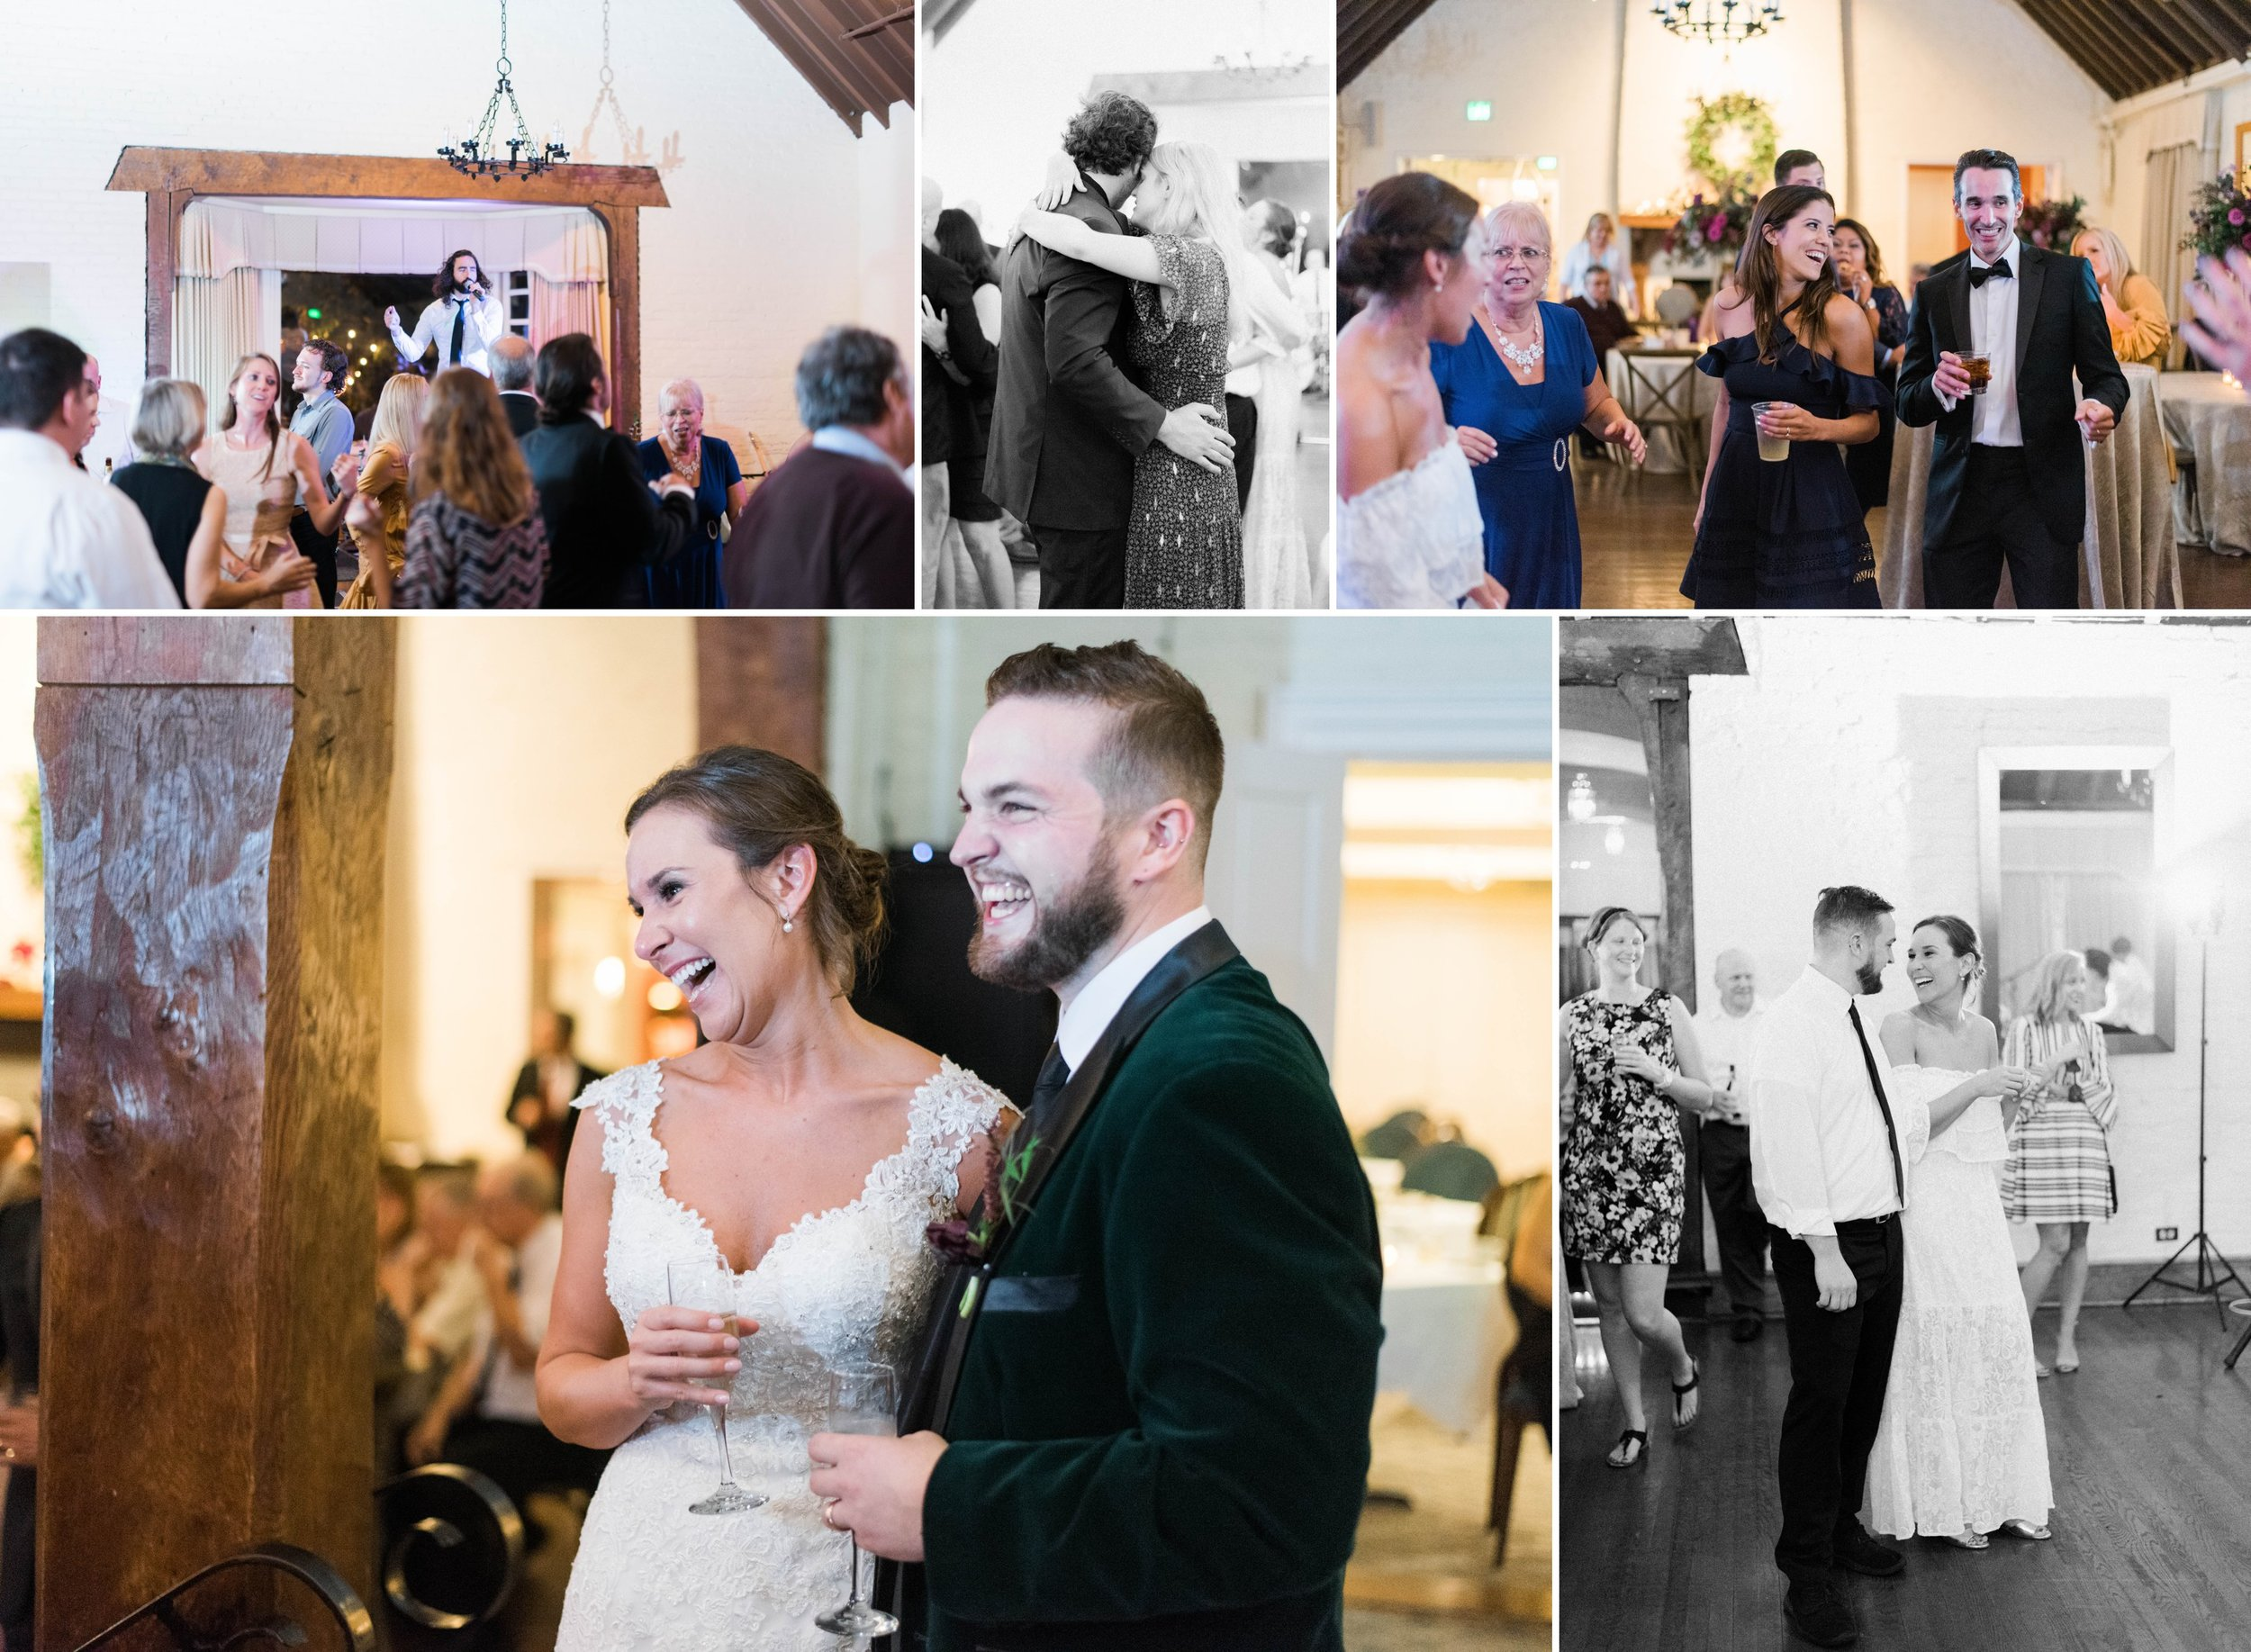 Gordan+Lauren_BoonsboroCountryClubWedding_Virginiaweddingphotographer_LynchburgVi 3.jpg